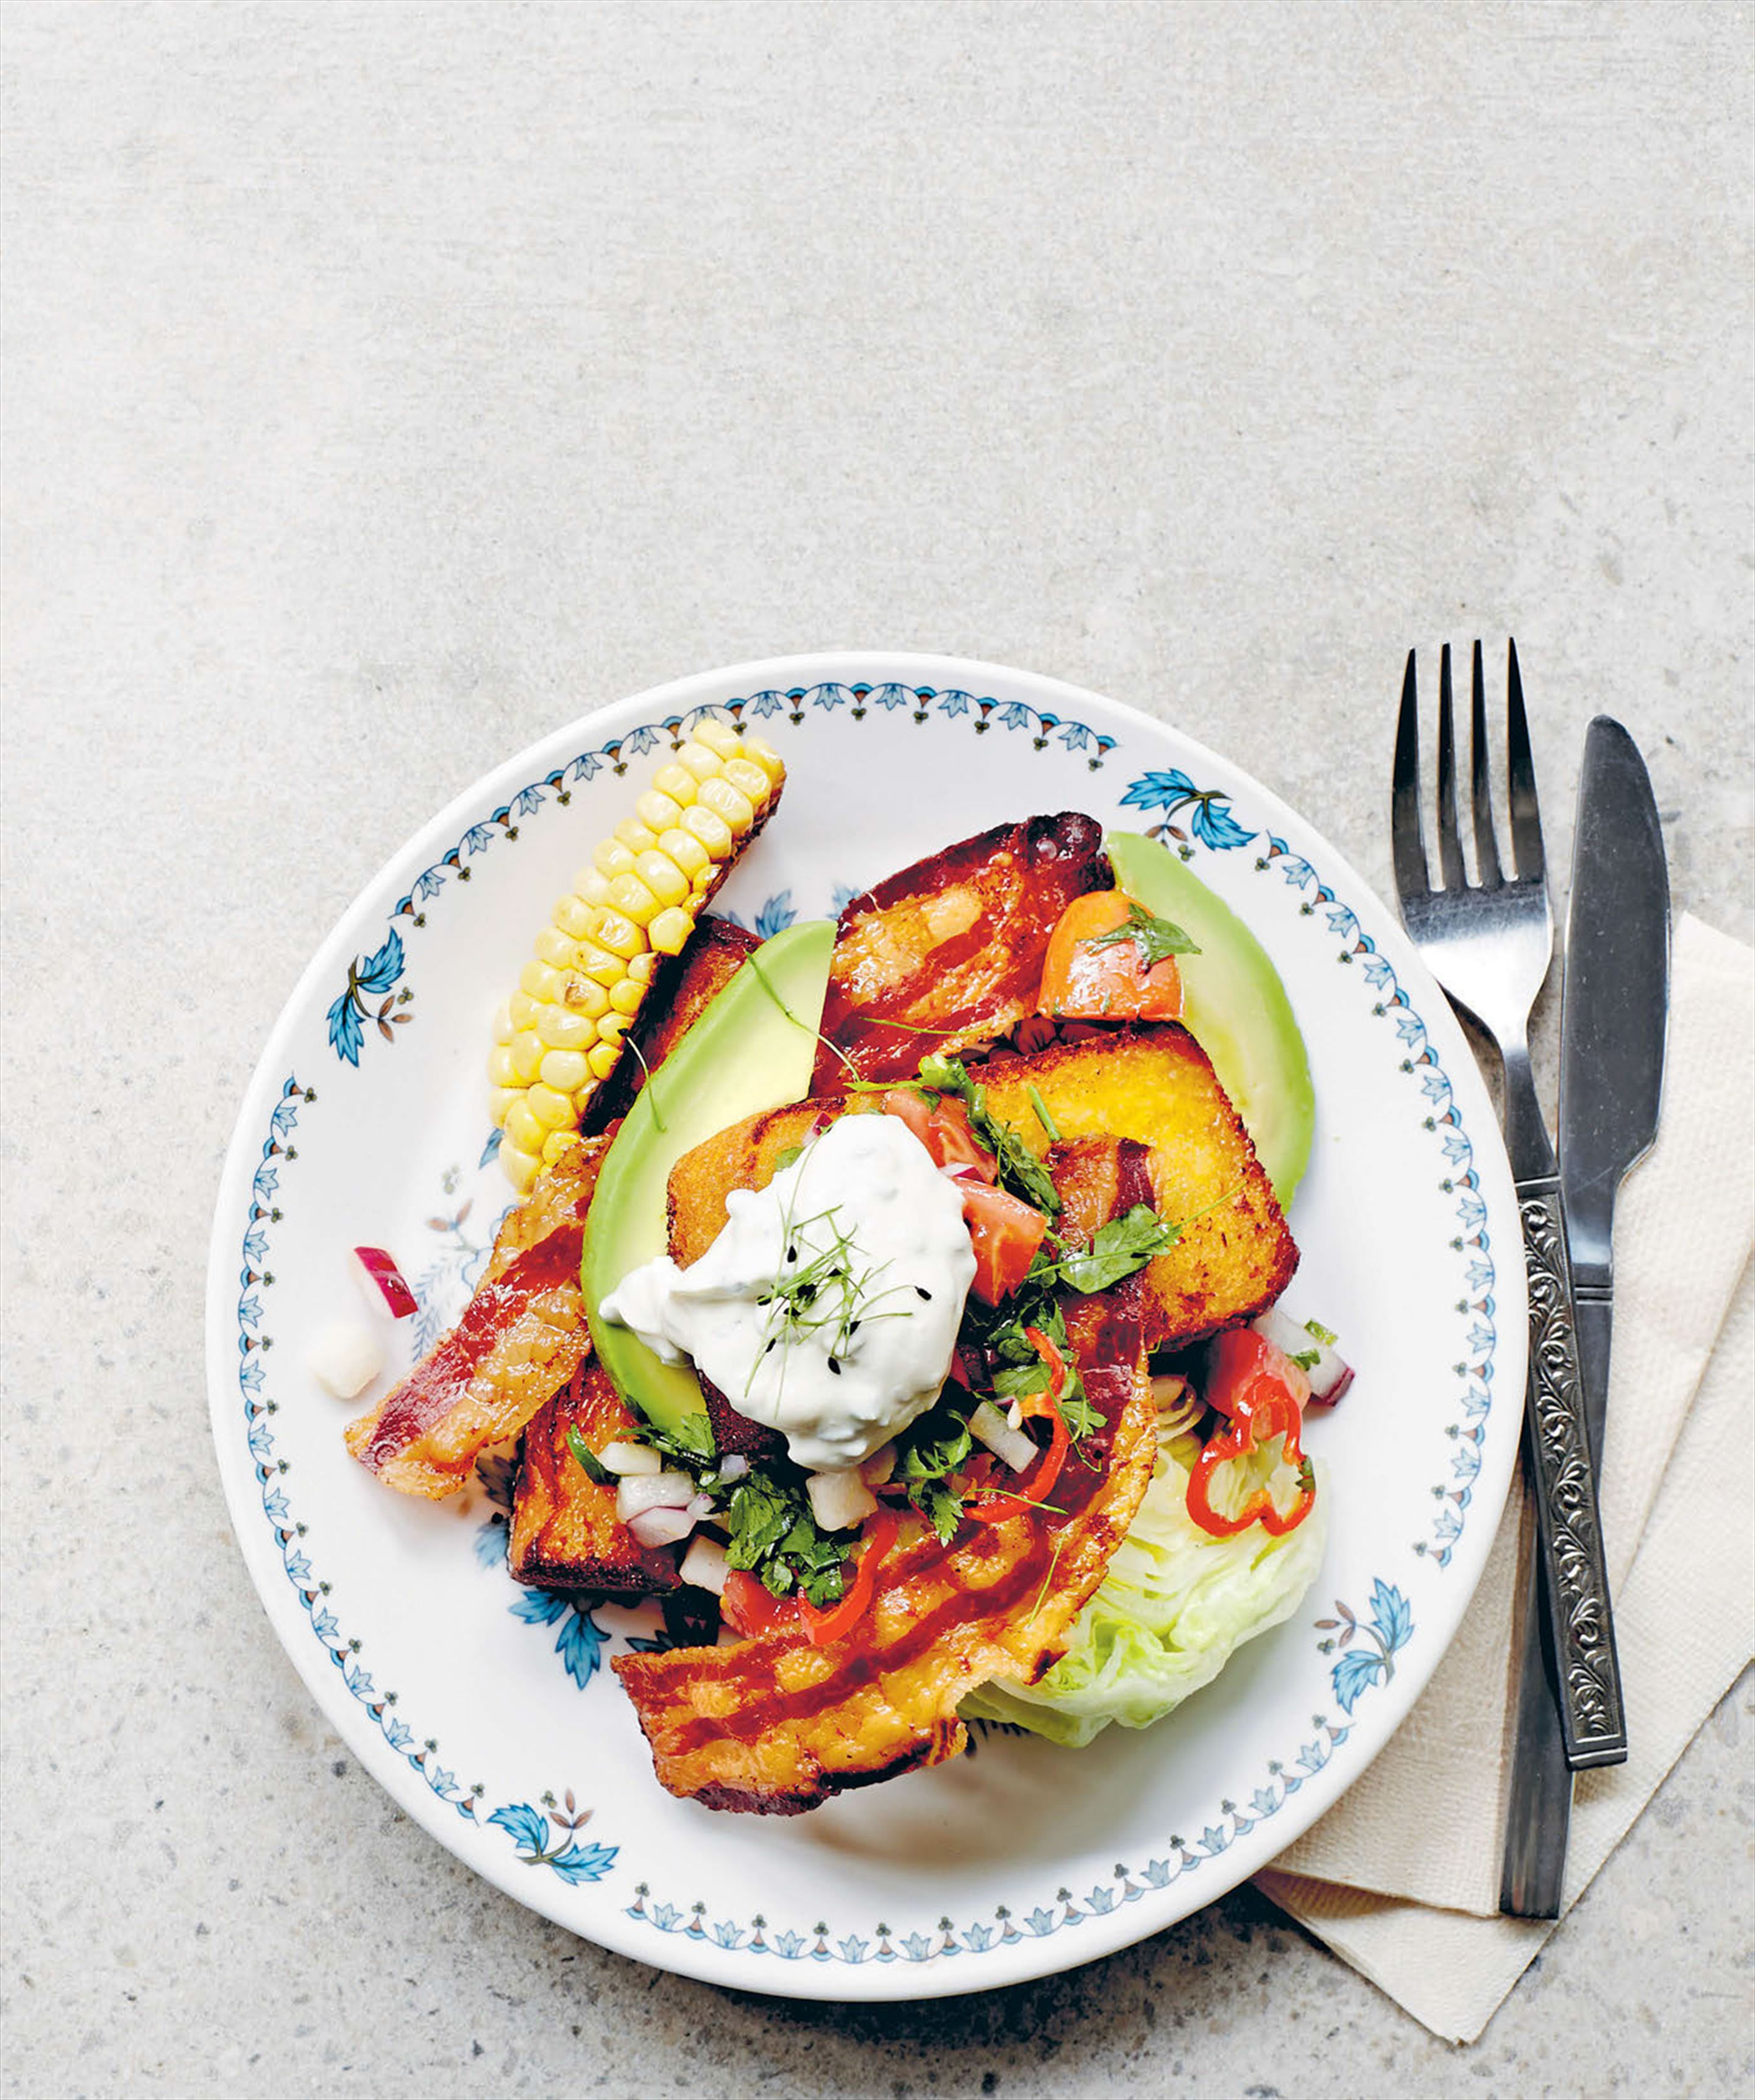 Sweetcorn French toast with pancetta & avocado